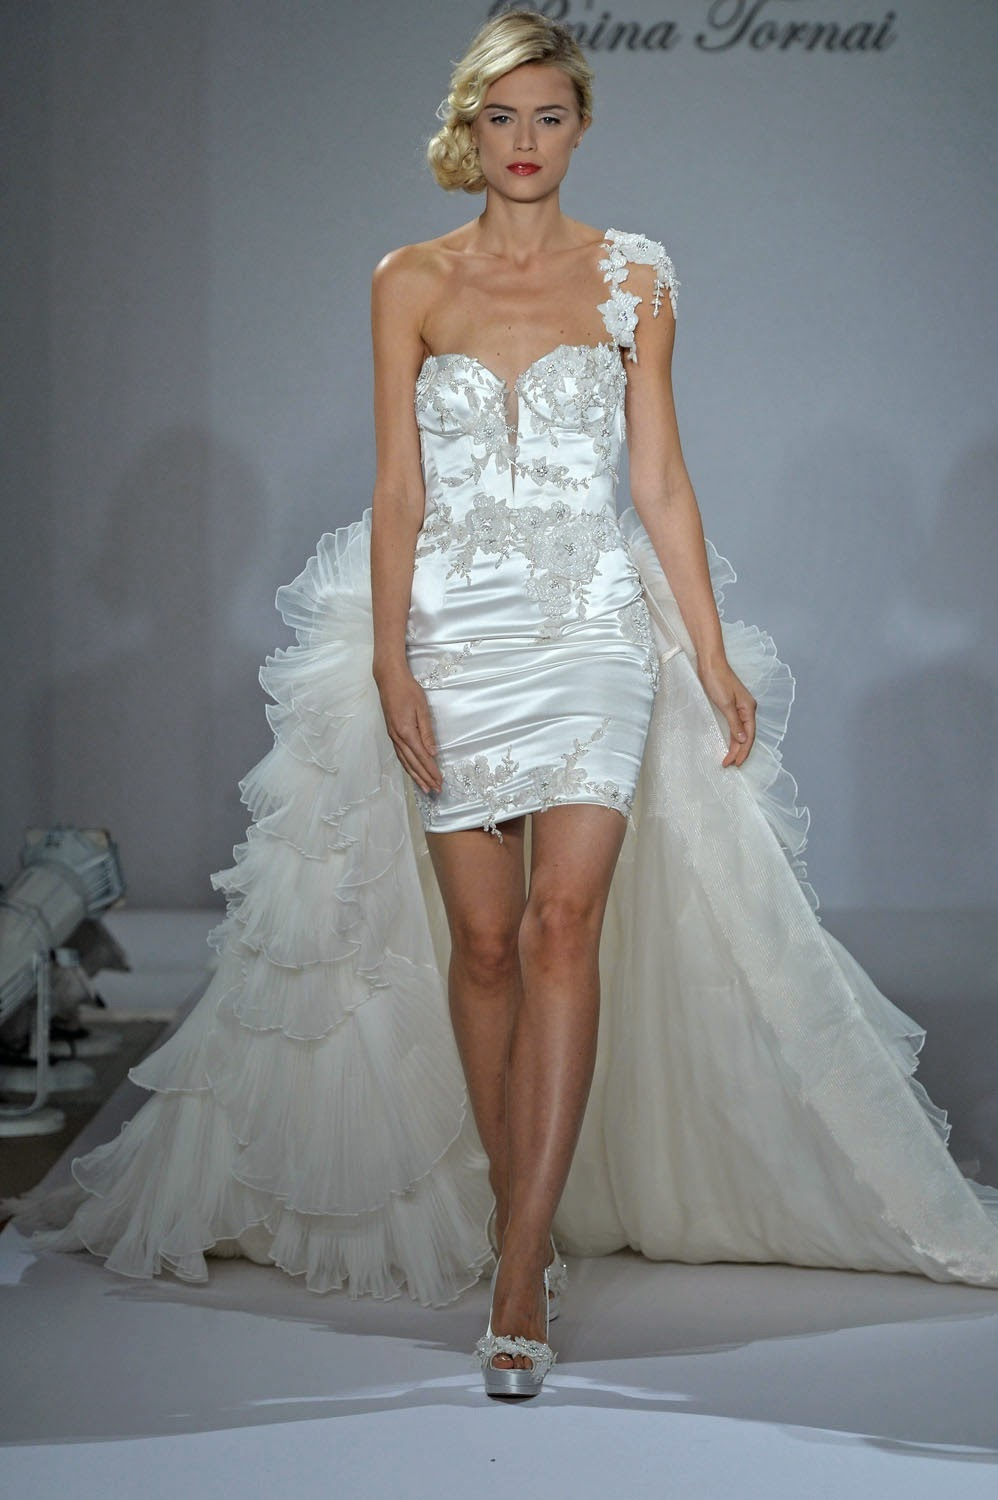 Pnina Tornai Fall 2015 Wedding Dresses  Runway. Maggie Sottero Fit And Flare Wedding Dresses. Vintage Wedding Dresses West Yorkshire. Summer's Wedding Dress The Oc. Beautiful Wedding Dresses For Older Brides. Red Mountain Church Wedding Dress Lyrics. David's Bridal Romantic Wedding Dresses. Lace Wedding Dresses With Open Back And Sleeves. Summer Wedding Reception Dresses